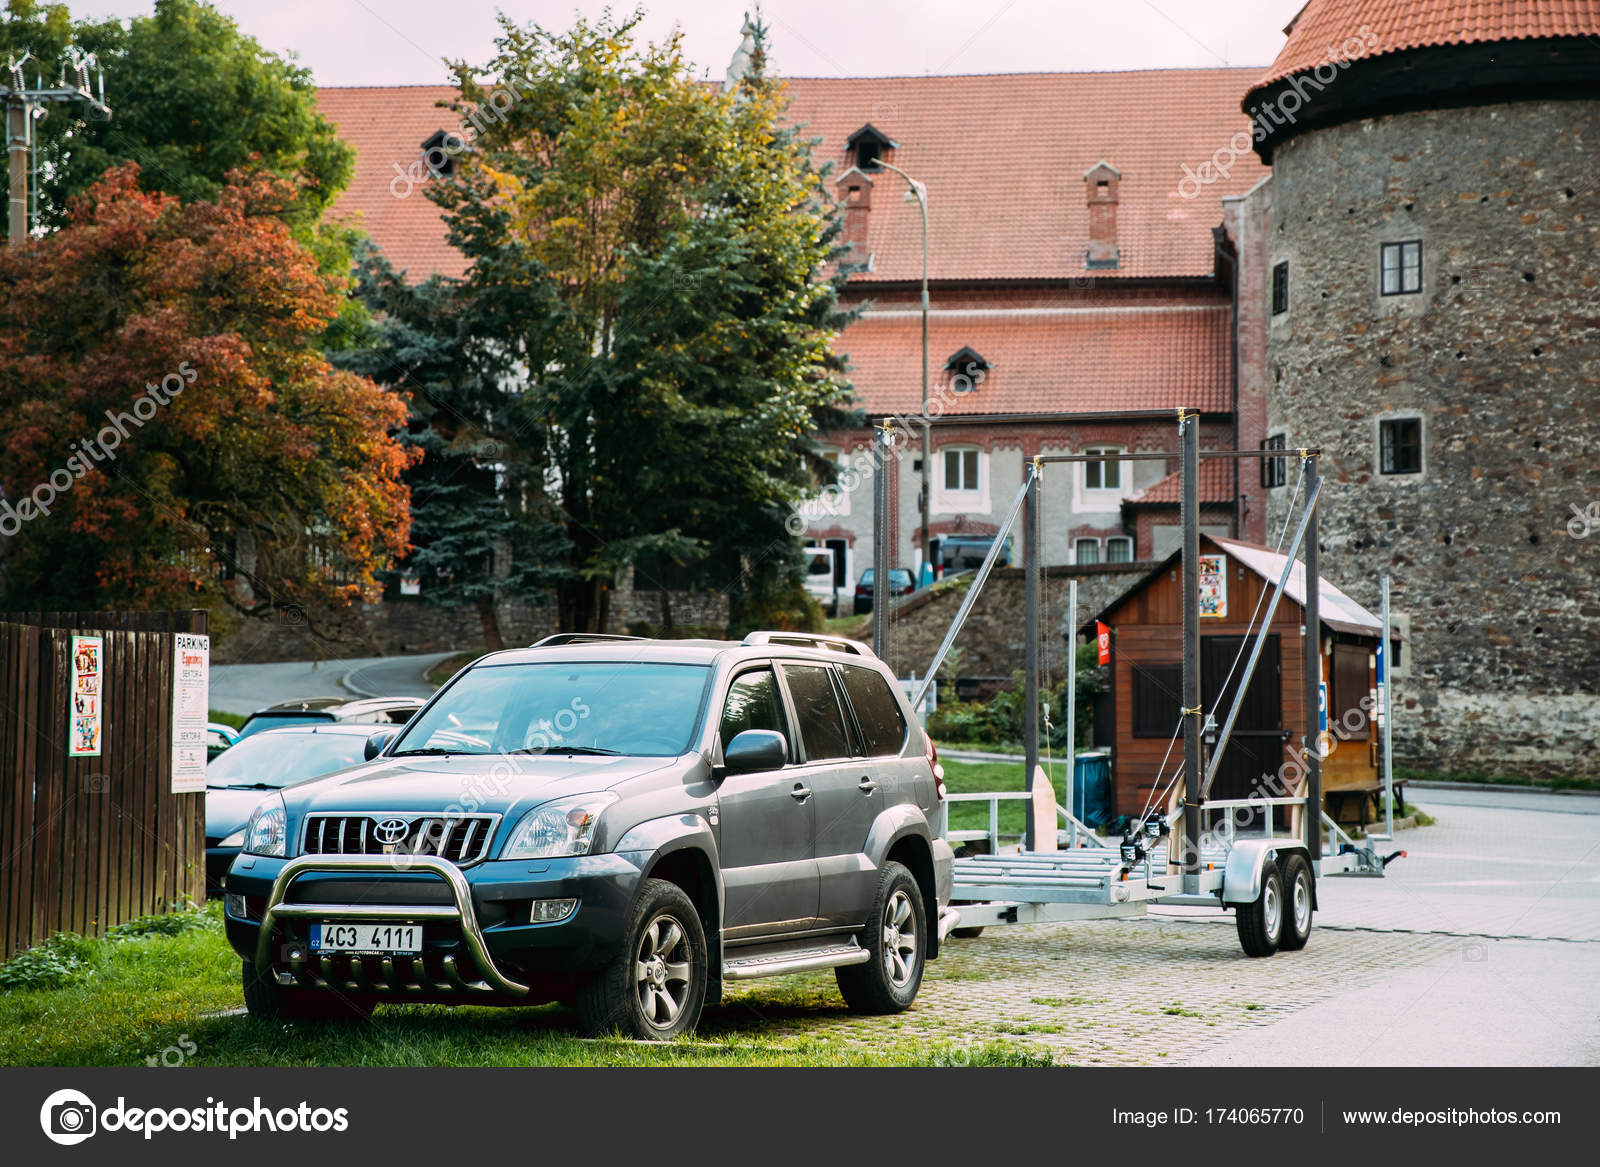 Toyota Land Cruiser Prado Serie 120 Car Of Grey Metallic With Suv Cesky Krumlov Czech Republic September 25 2017 Front View Trailer Parked In Street